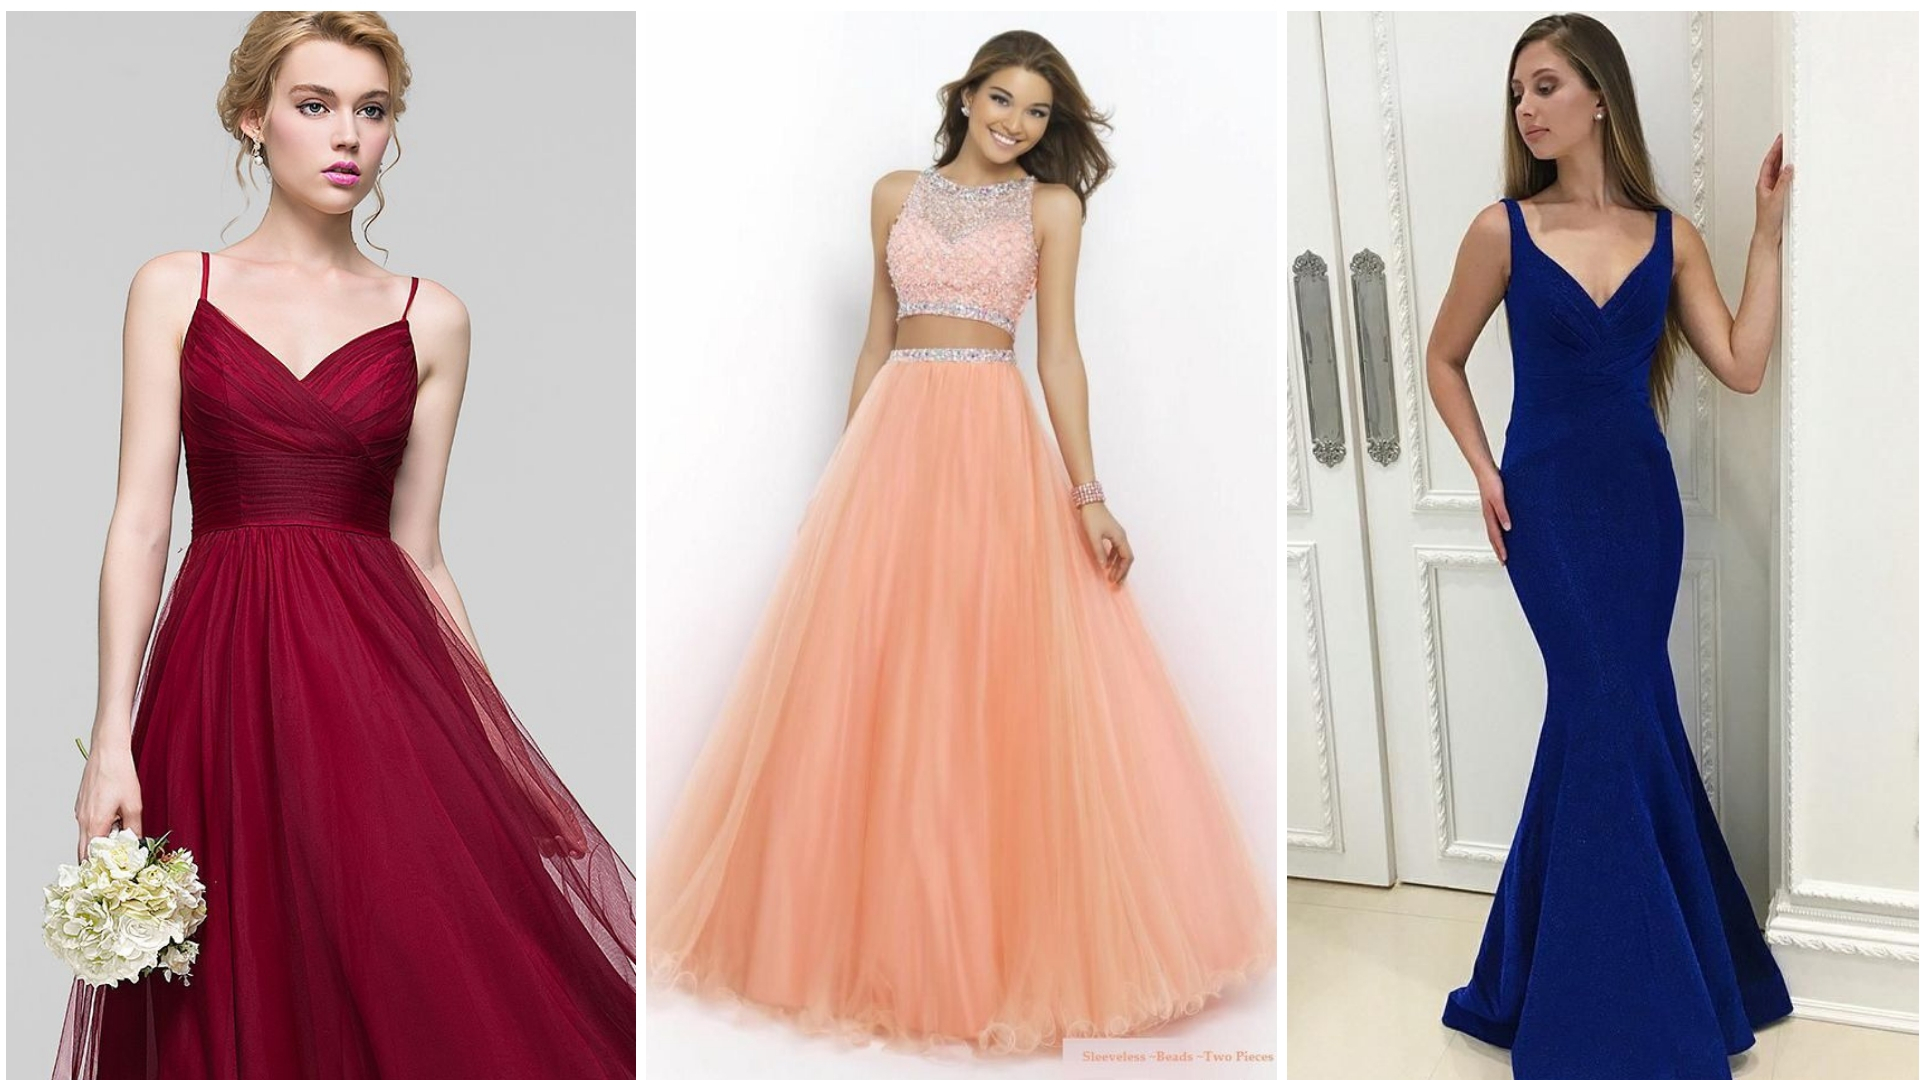 Best Trustworthy Websites to Buy Online Prom Dresses